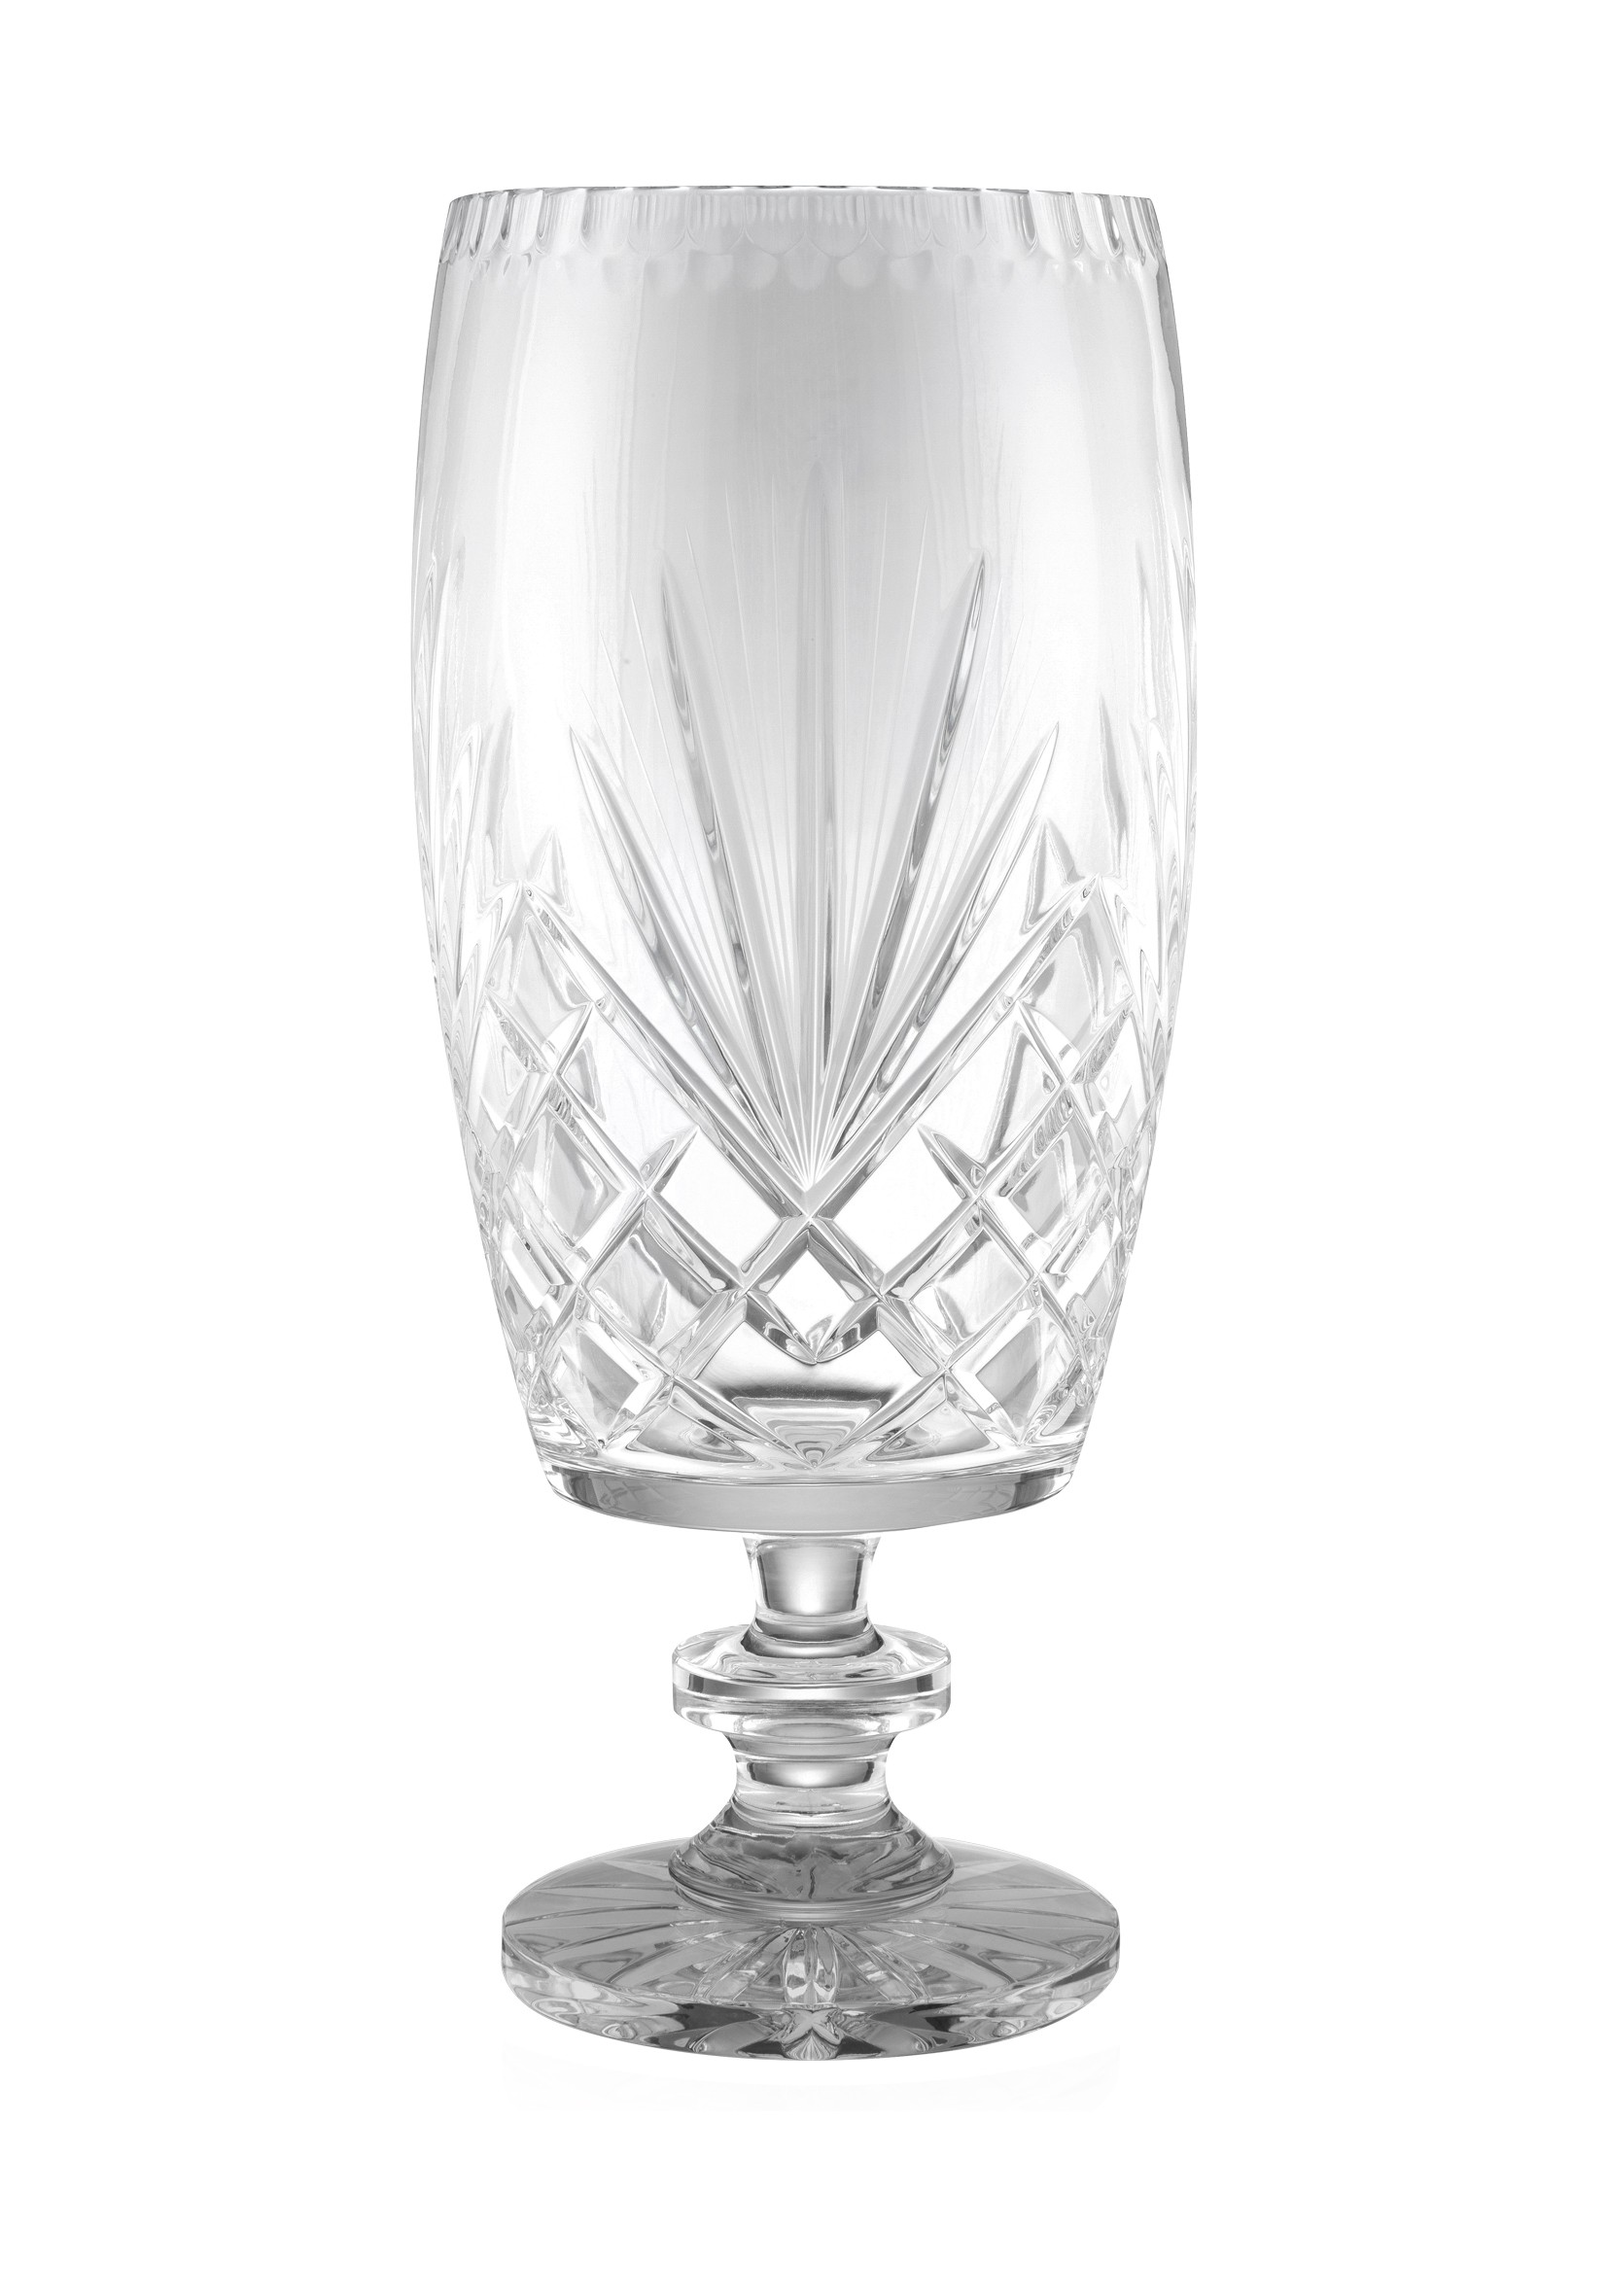 SBB Hand Cut Crystal Award